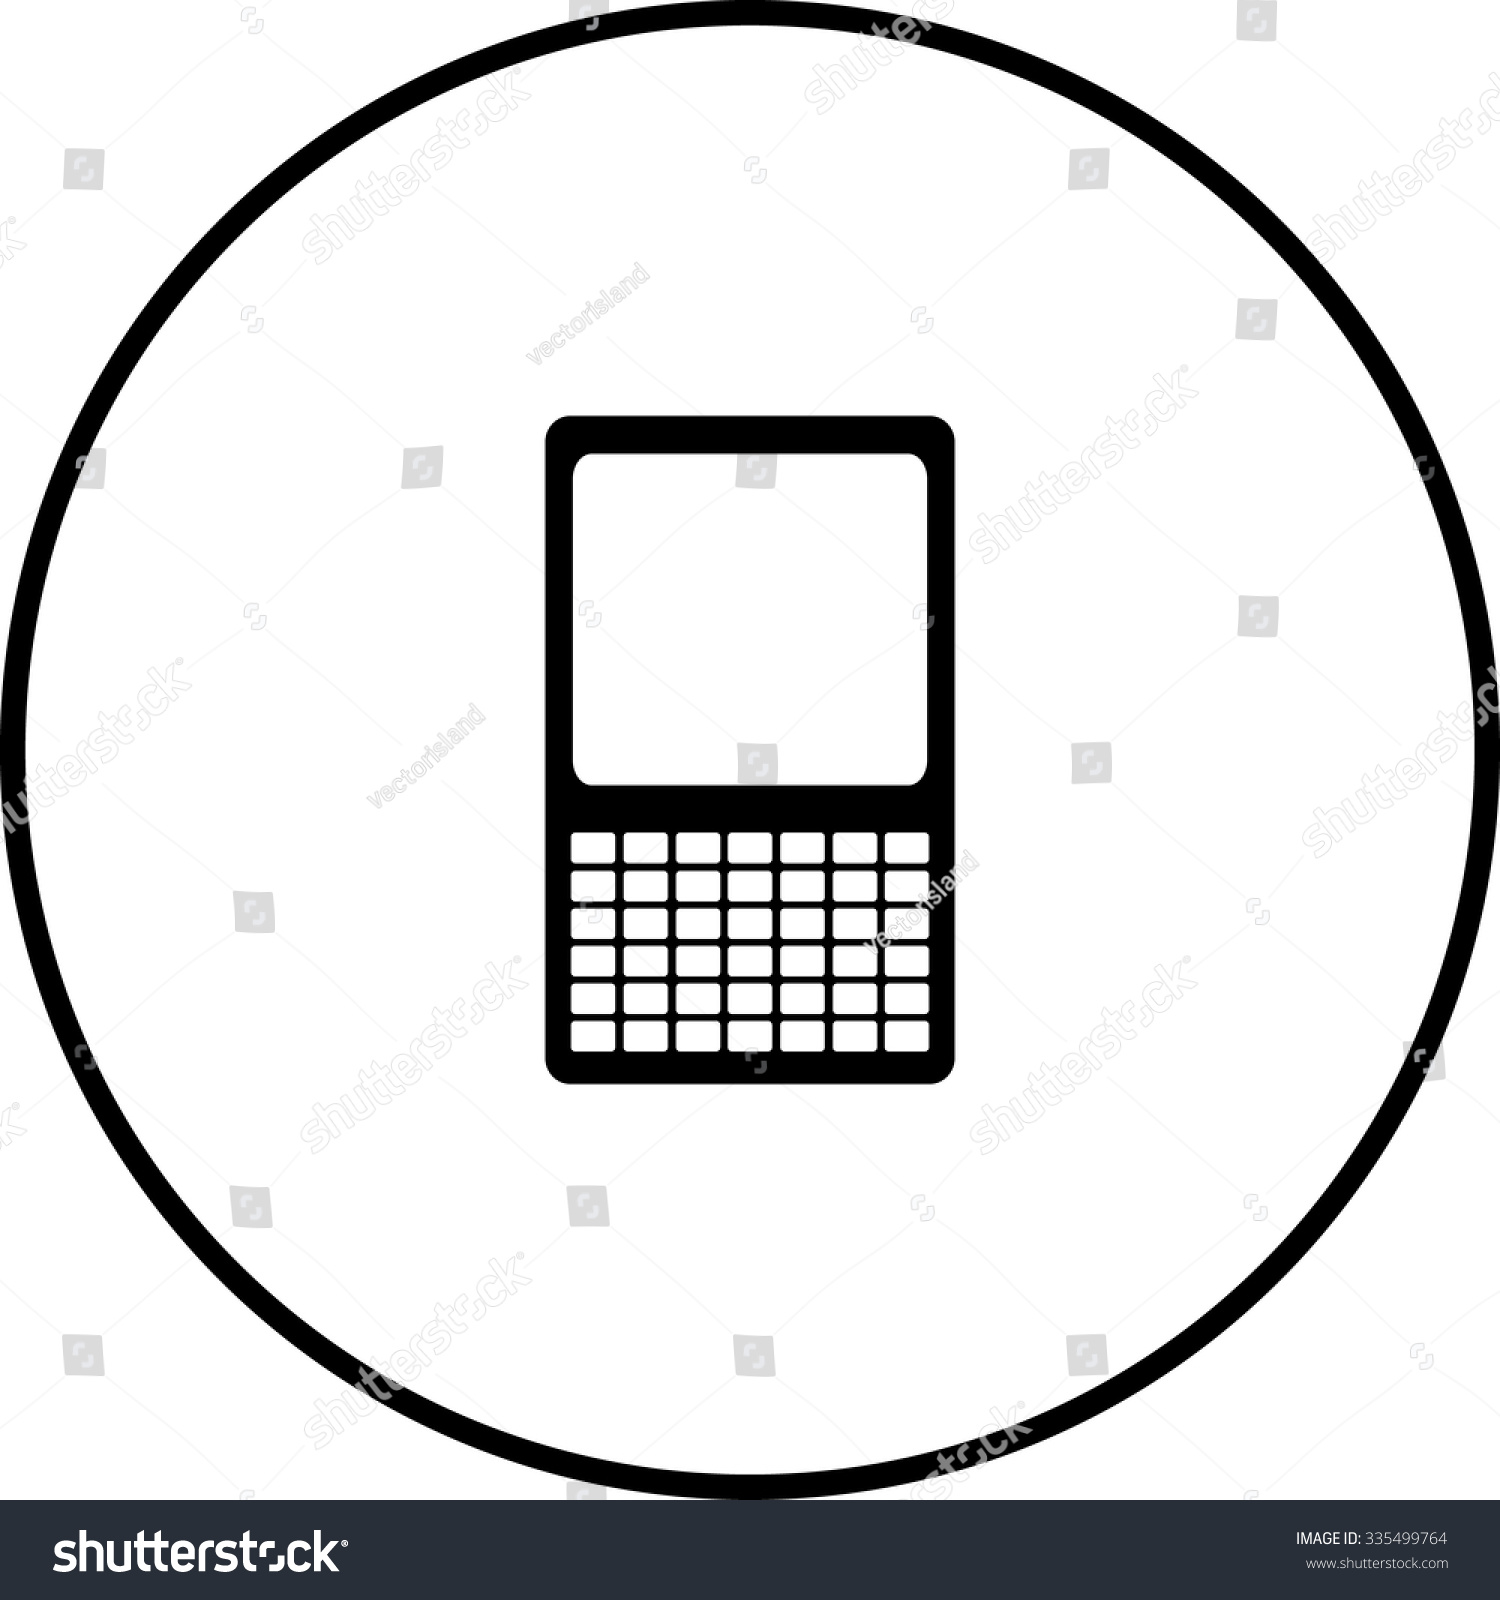 Mexican keyboard symbols gallery symbol and sign ideas mobile device keyboard symbol stock vector 335499764 shutterstock mobile device with keyboard symbol buycottarizona buycottarizona